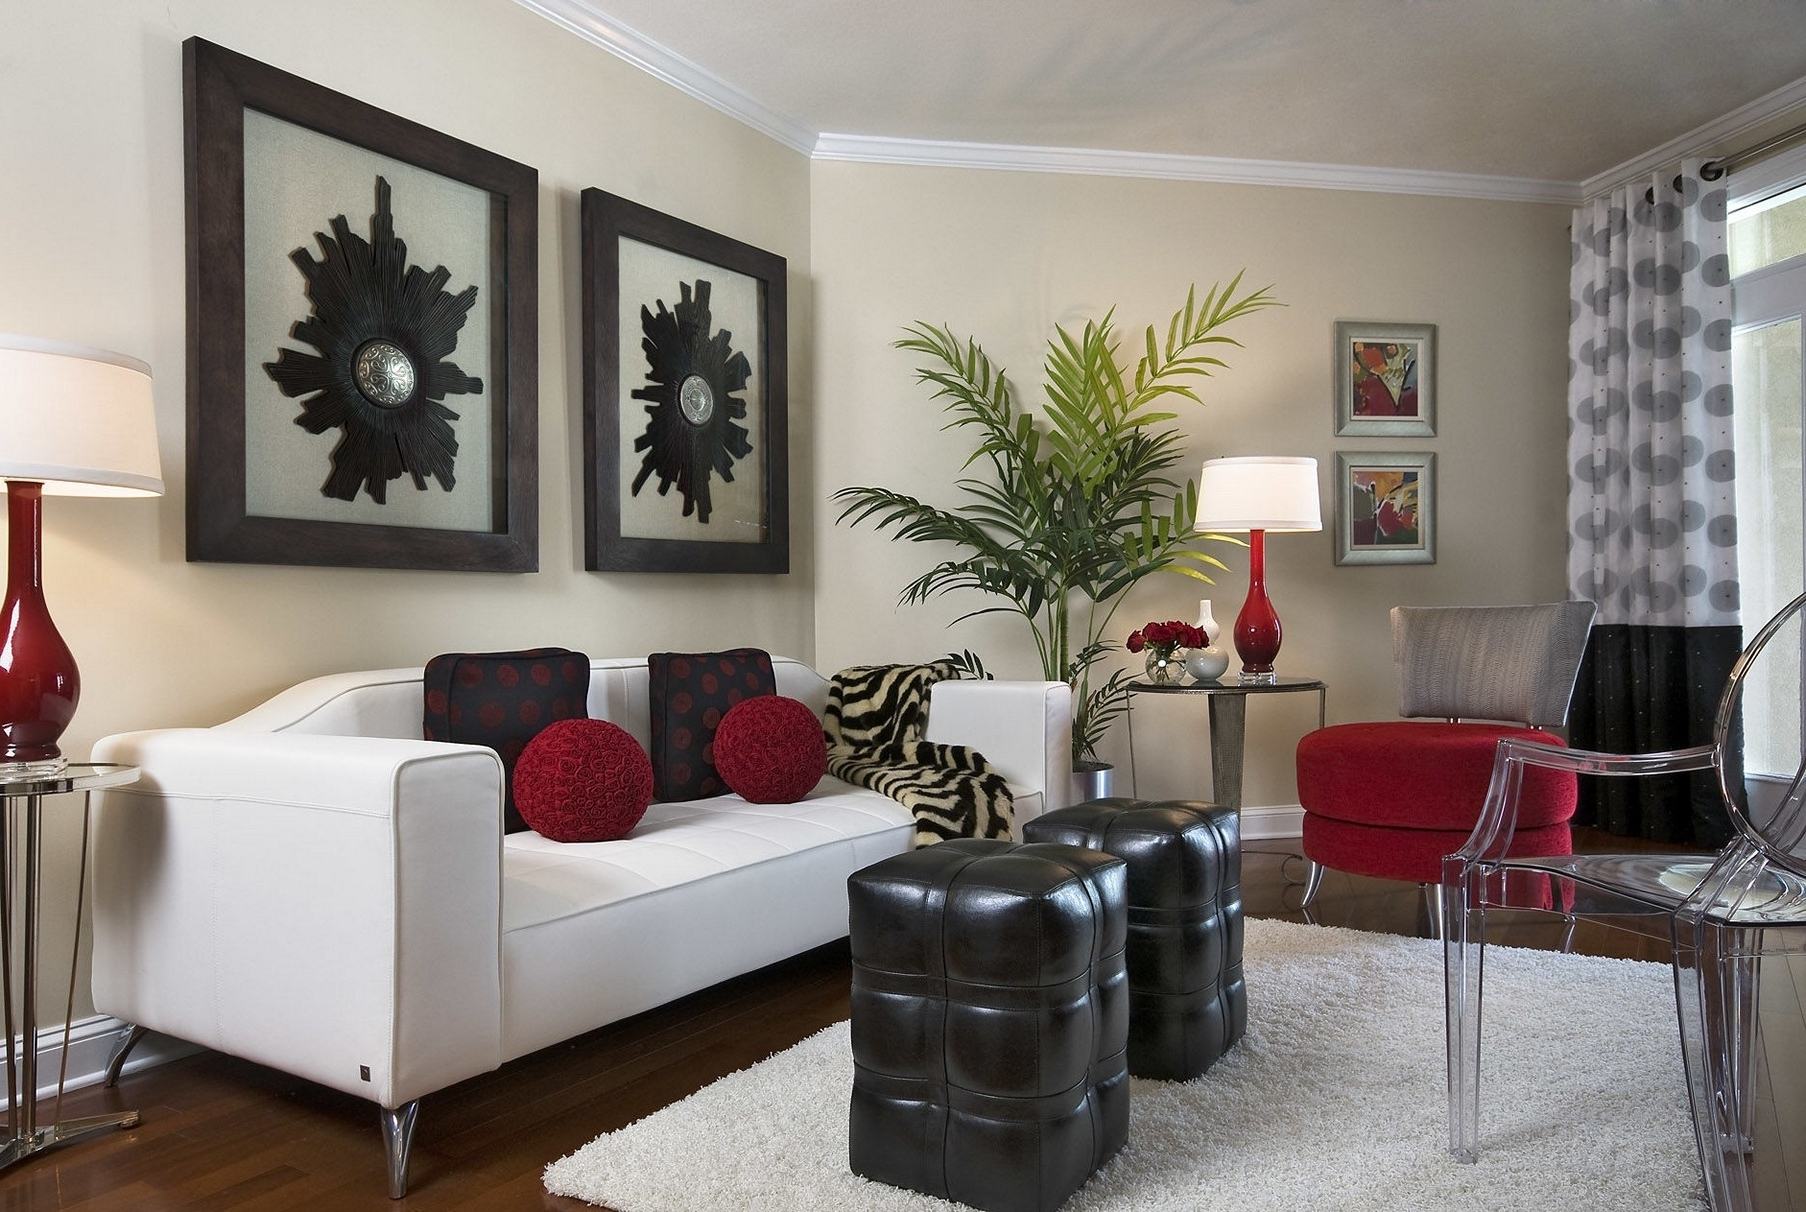 Wall Art Ideas For Living Room Within 2018 Awesome Living Room Wall Art Ideas Top Living Room Remodel Ideas (View 7 of 15)